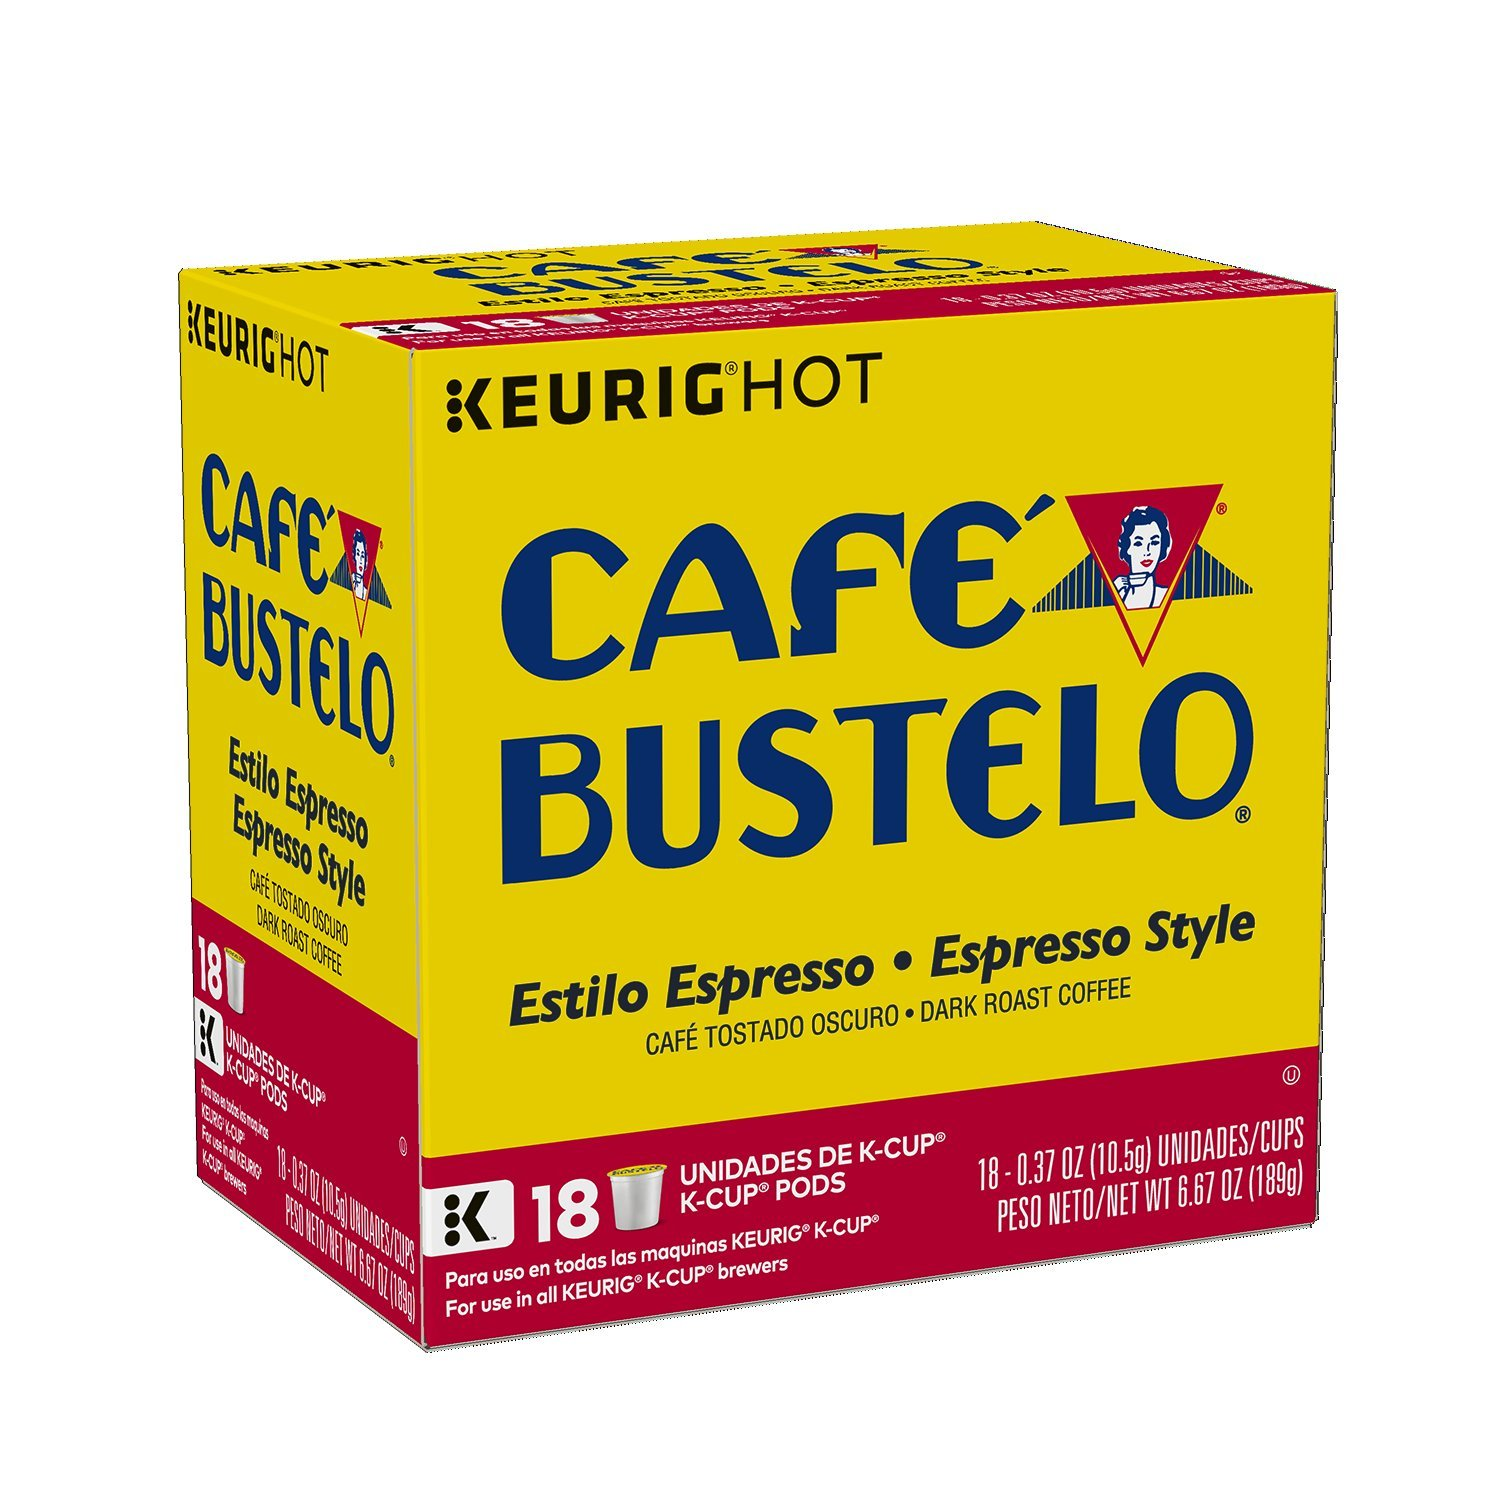 Cafe Bustelo Espresso Style K-Cup Pods for Keurig K-Cup Brewers, Dark Roast Coffee, 6.67 Ounce (Pack of 4) by Cafe Bustelo